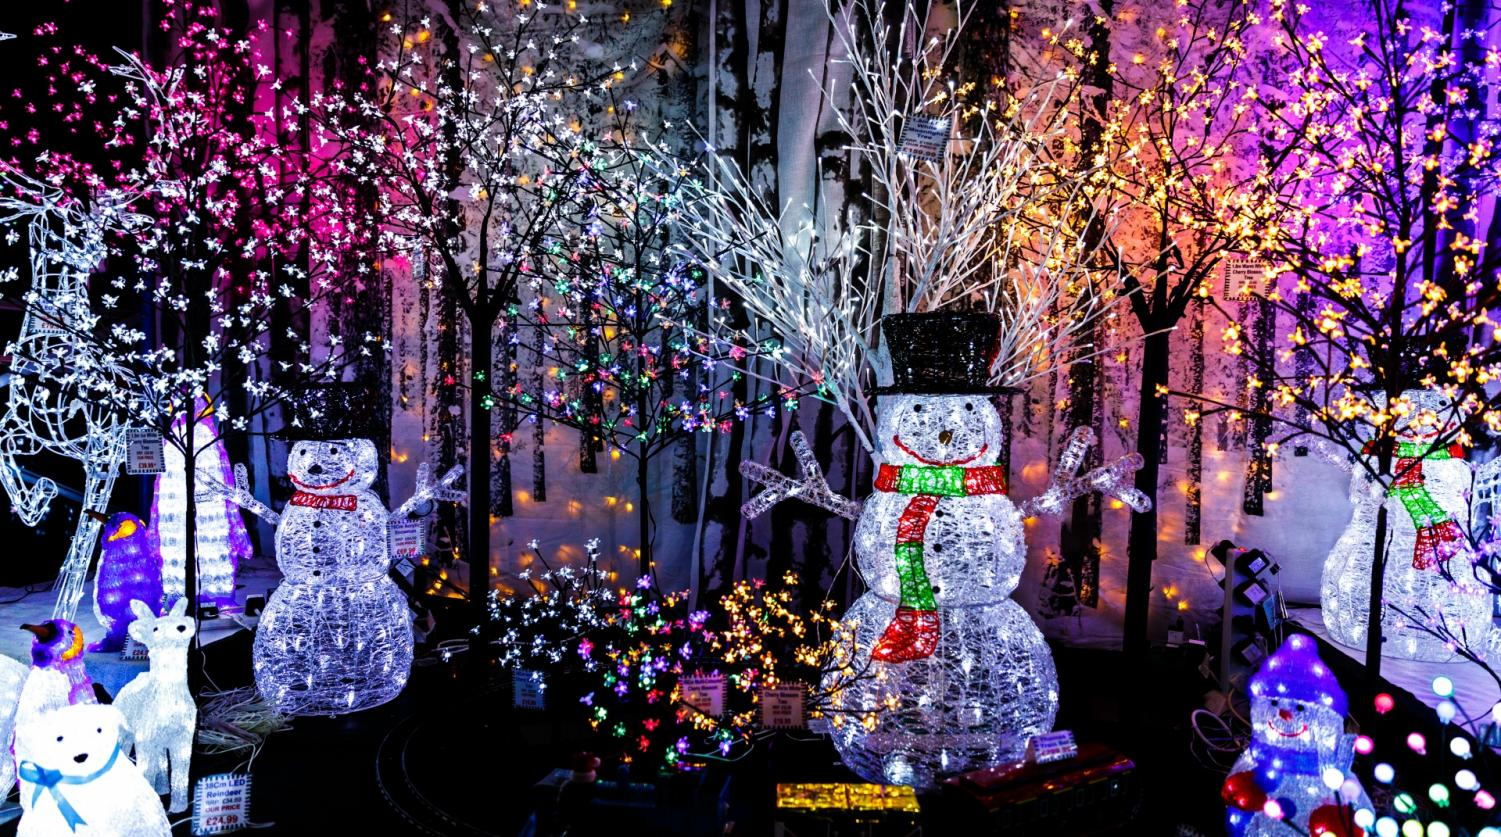 As students get excited for the holidays, one of their favorite activities is to drive around and look at the holiday light displays.